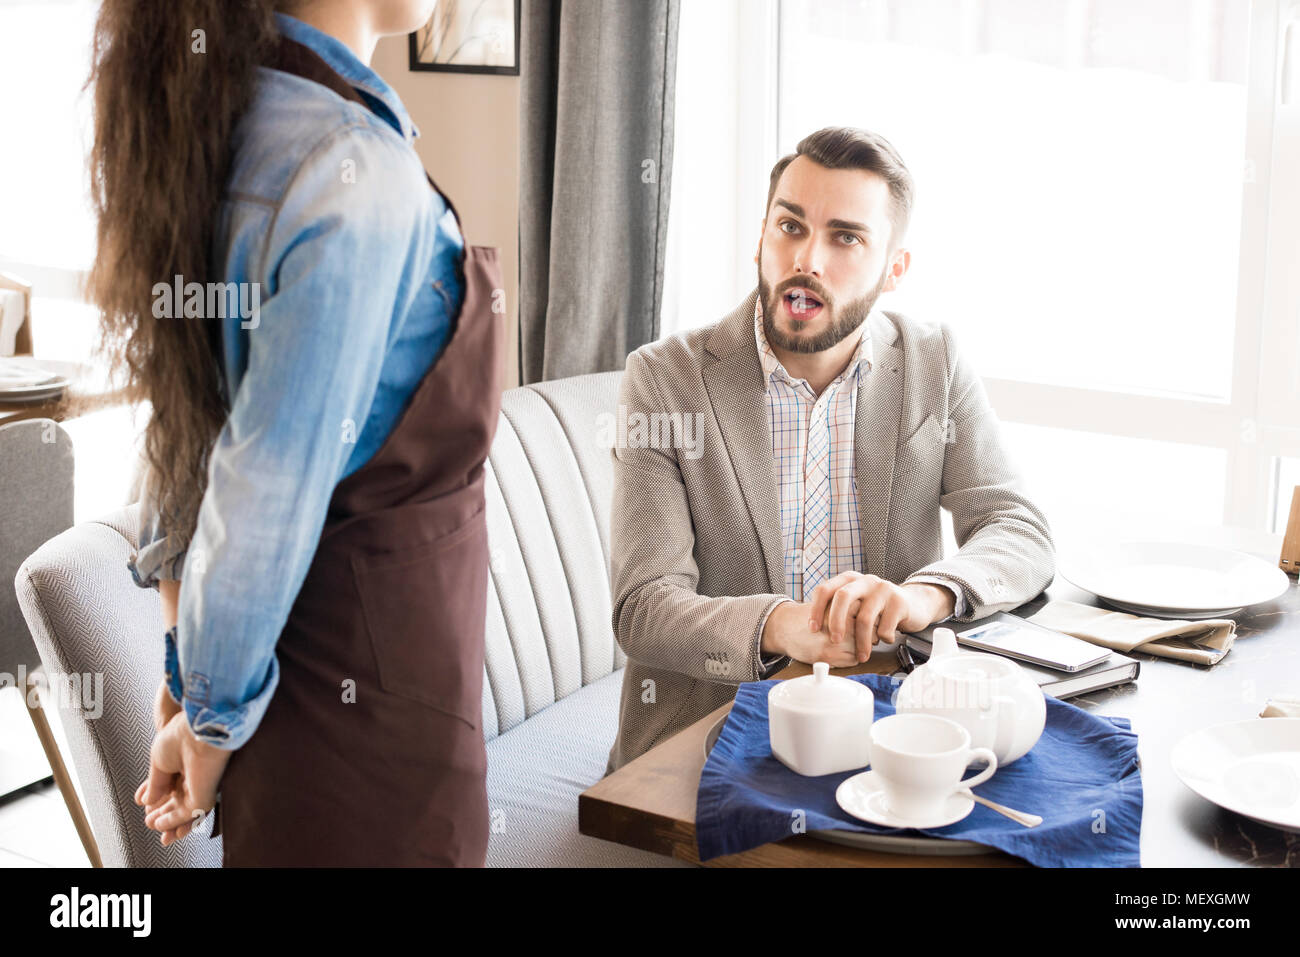 Pensive customer asking waitress in cafe - Stock Image